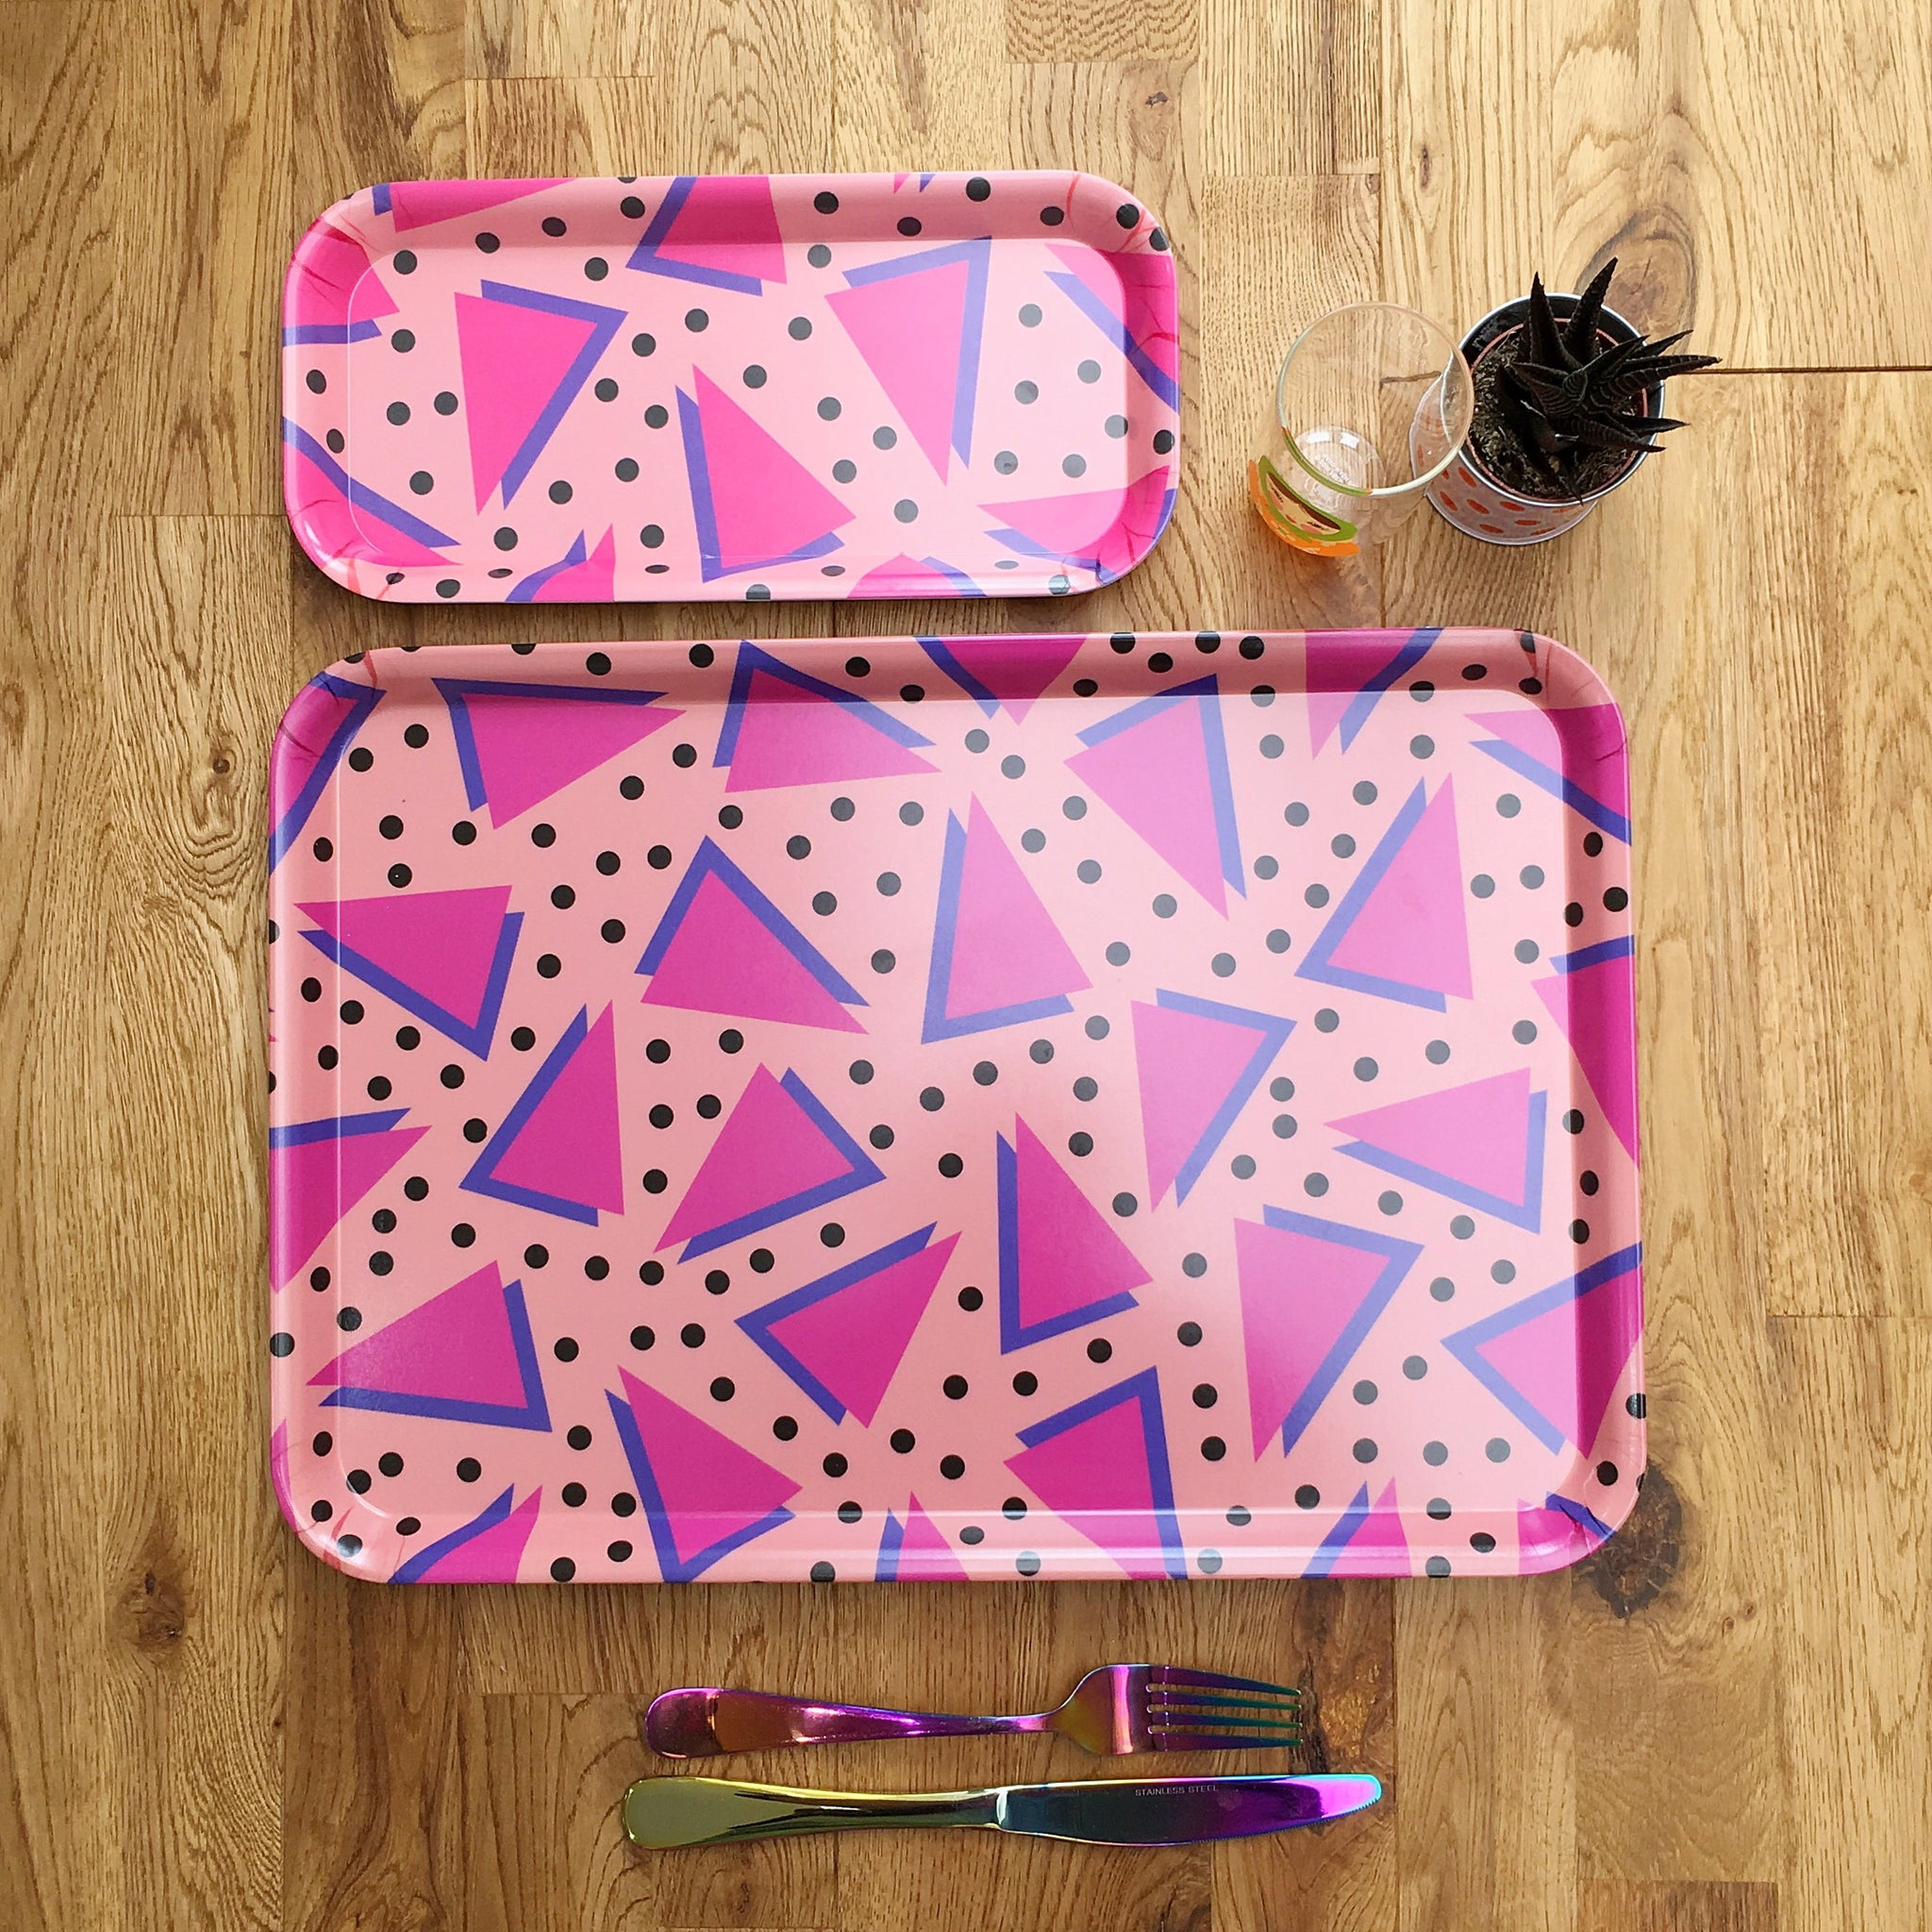 Dotty Pink Melamine Tray